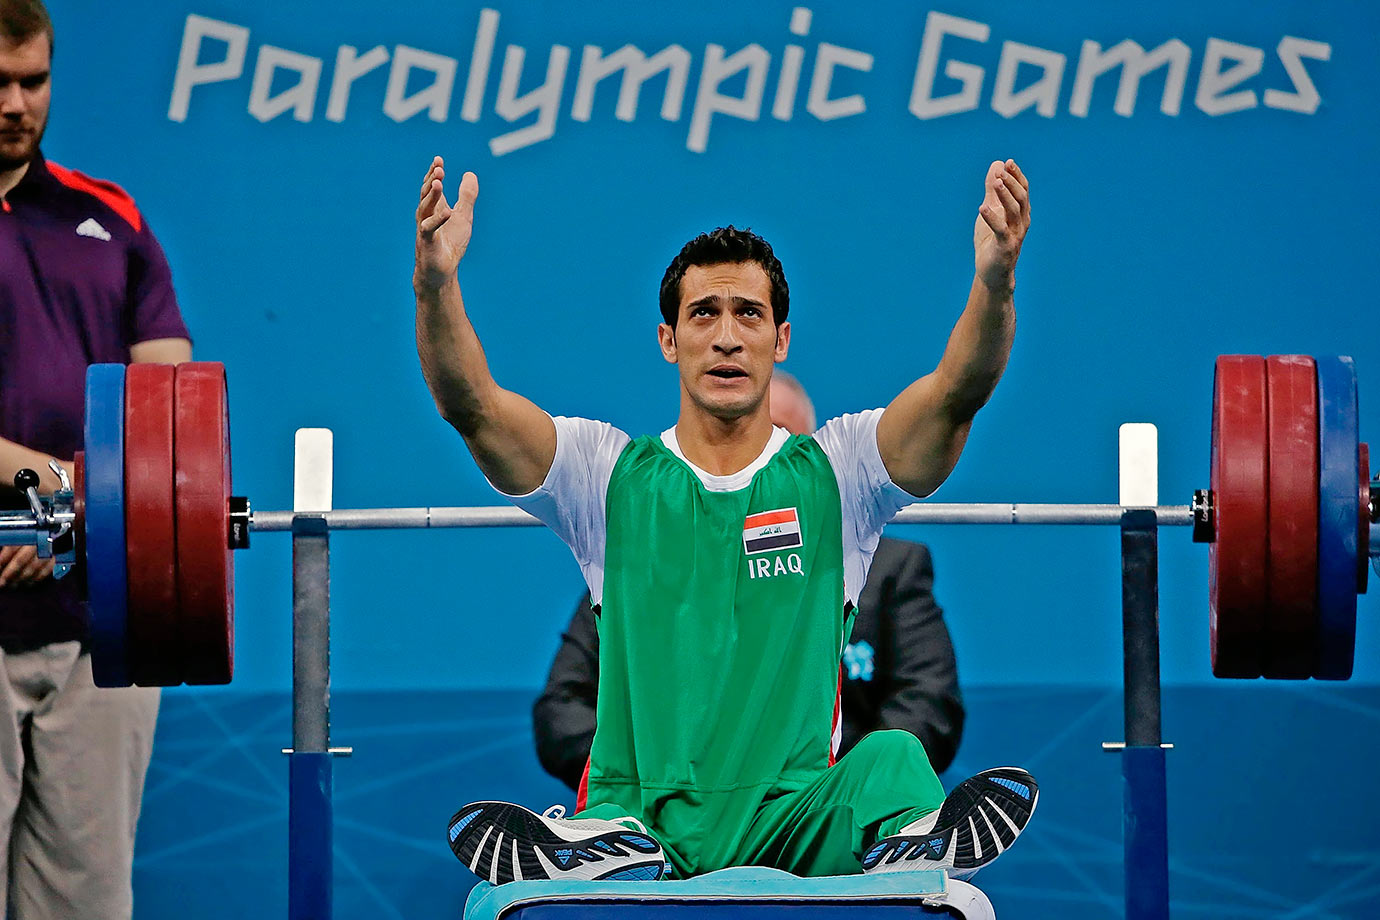 Paralympic powerlifter Hussein Juboori, 33, of Iraq was suspended for four years for a doping violation.